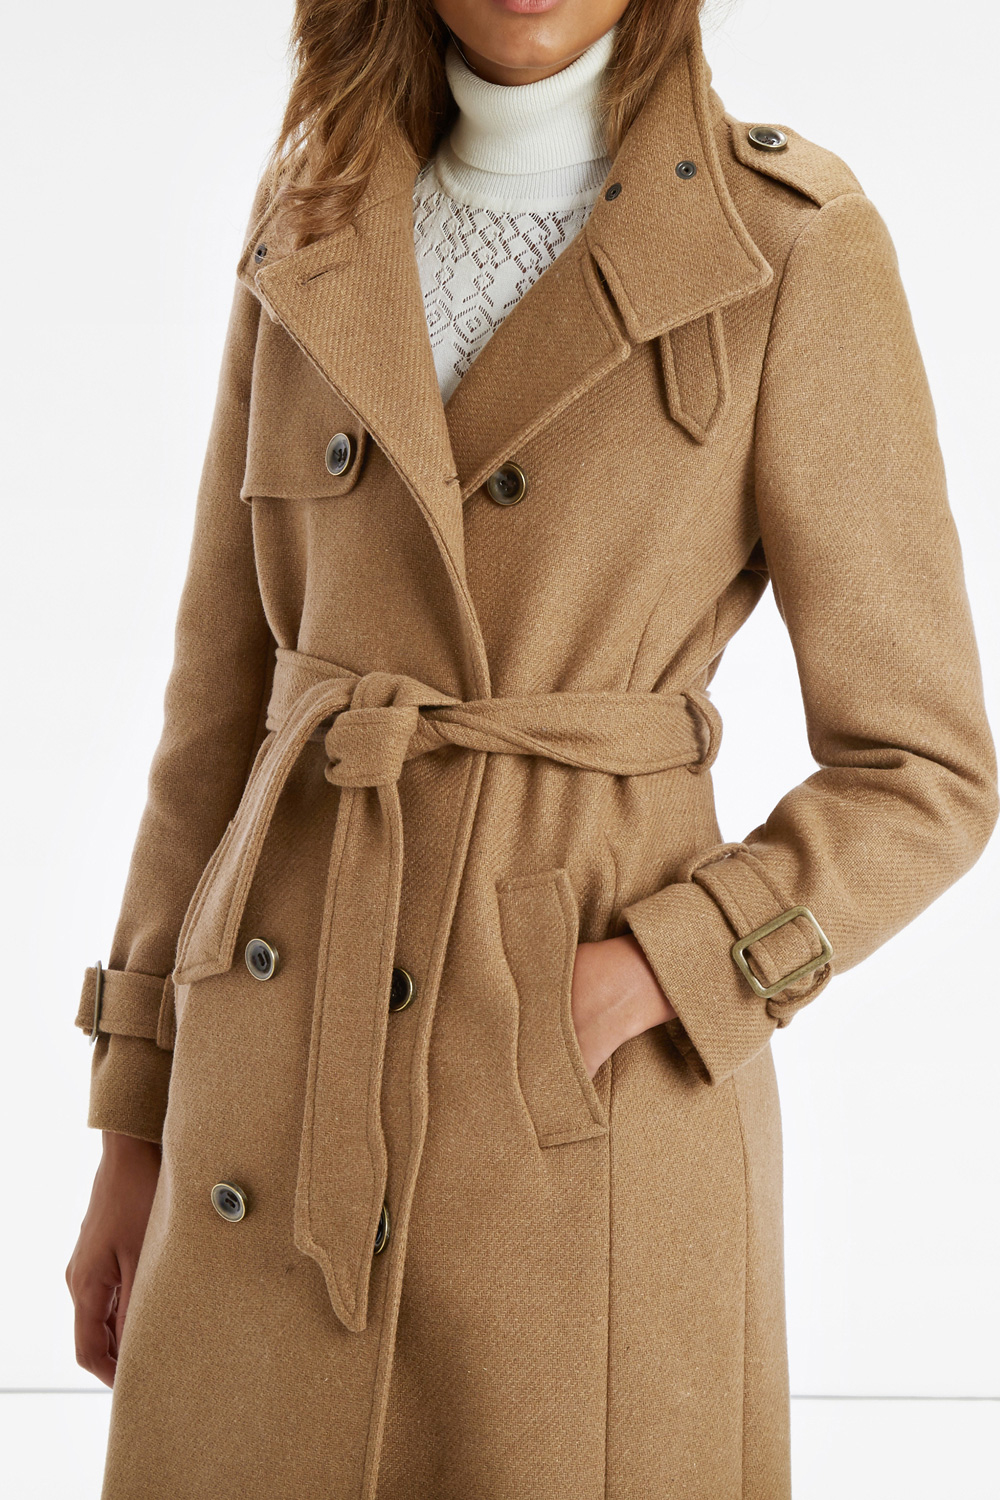 competitive price on feet at rational construction Oasis The Military Coat in Camel (Natural) - Lyst